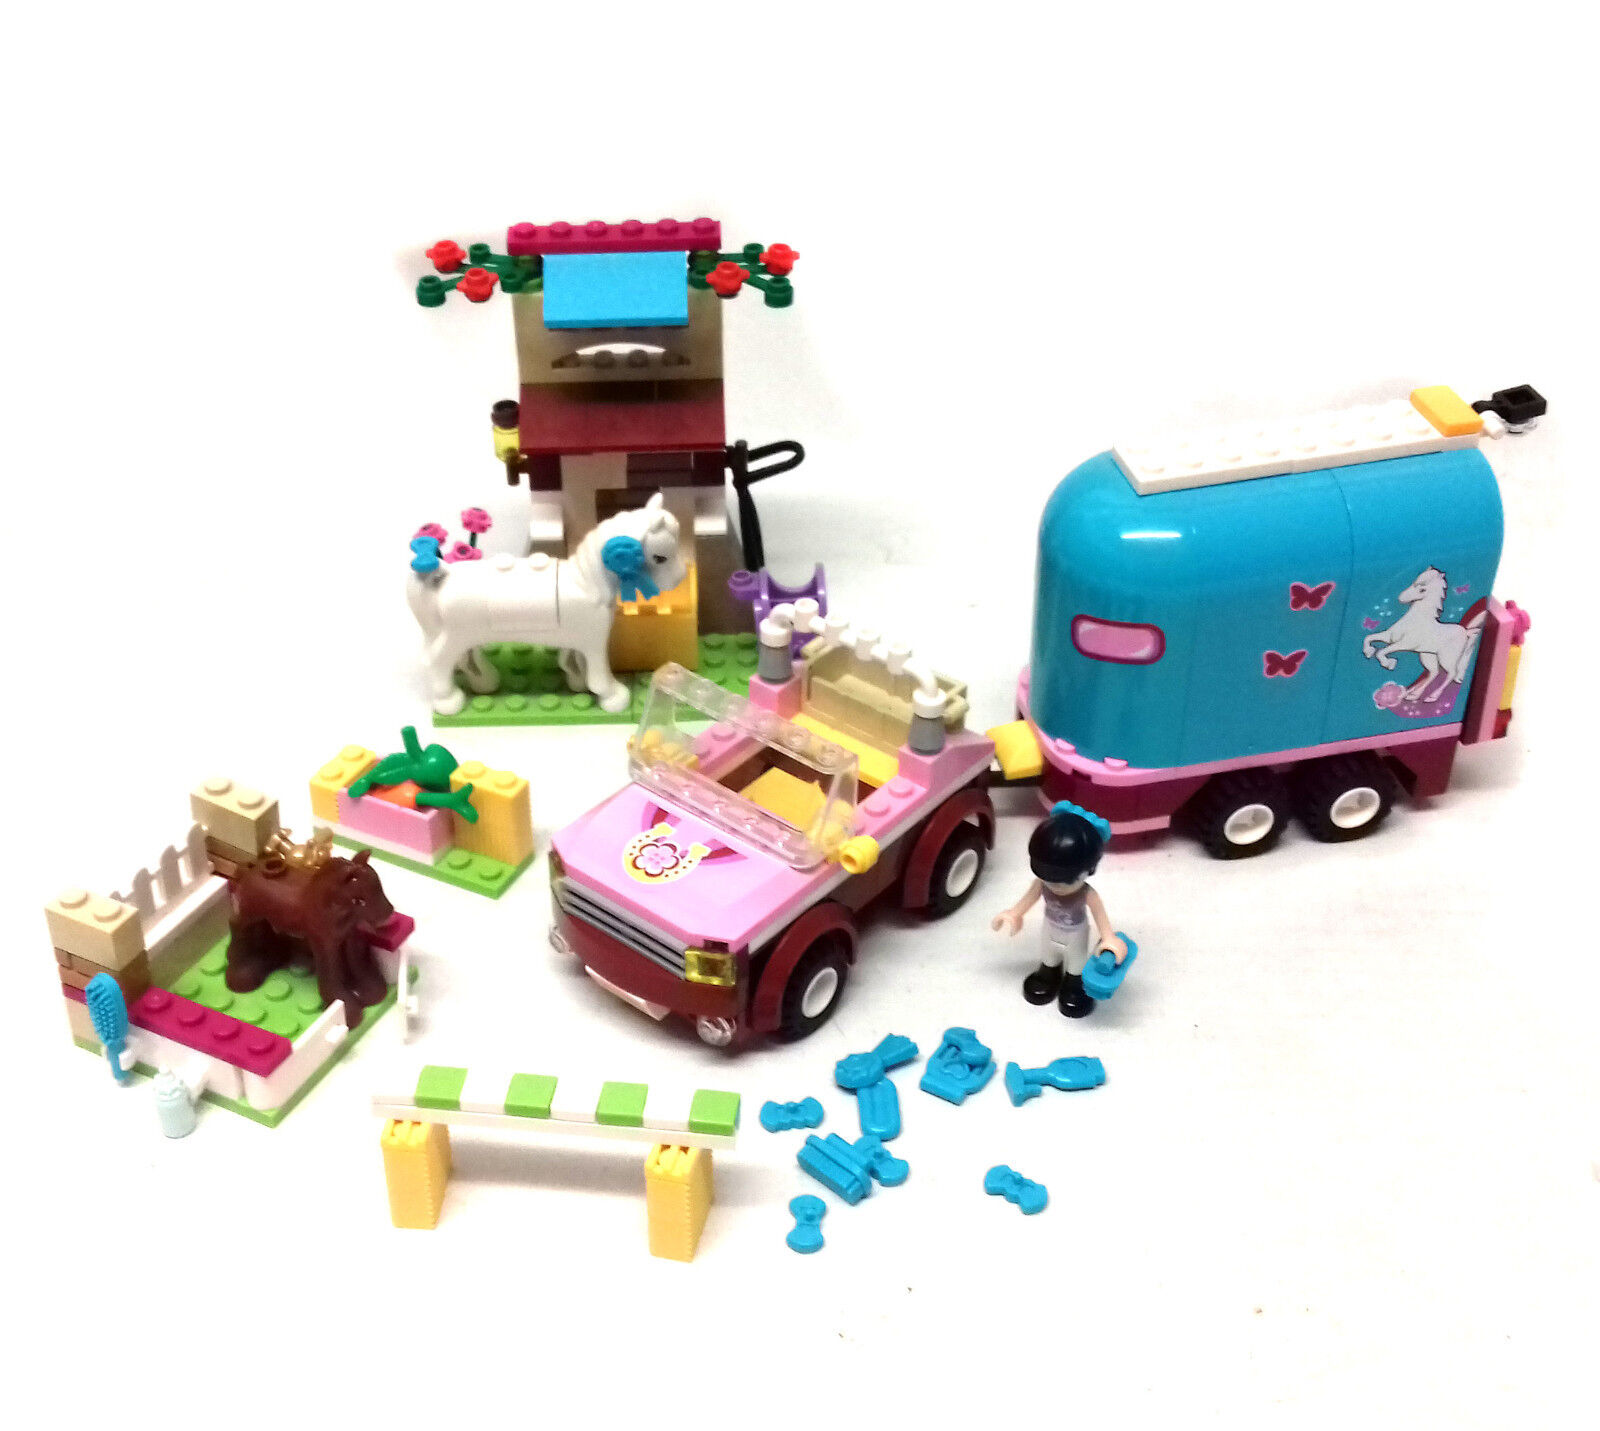 LEGO TOYS 3186 Friends Emma's Horse Trailer set with figures & Extra Fowl set